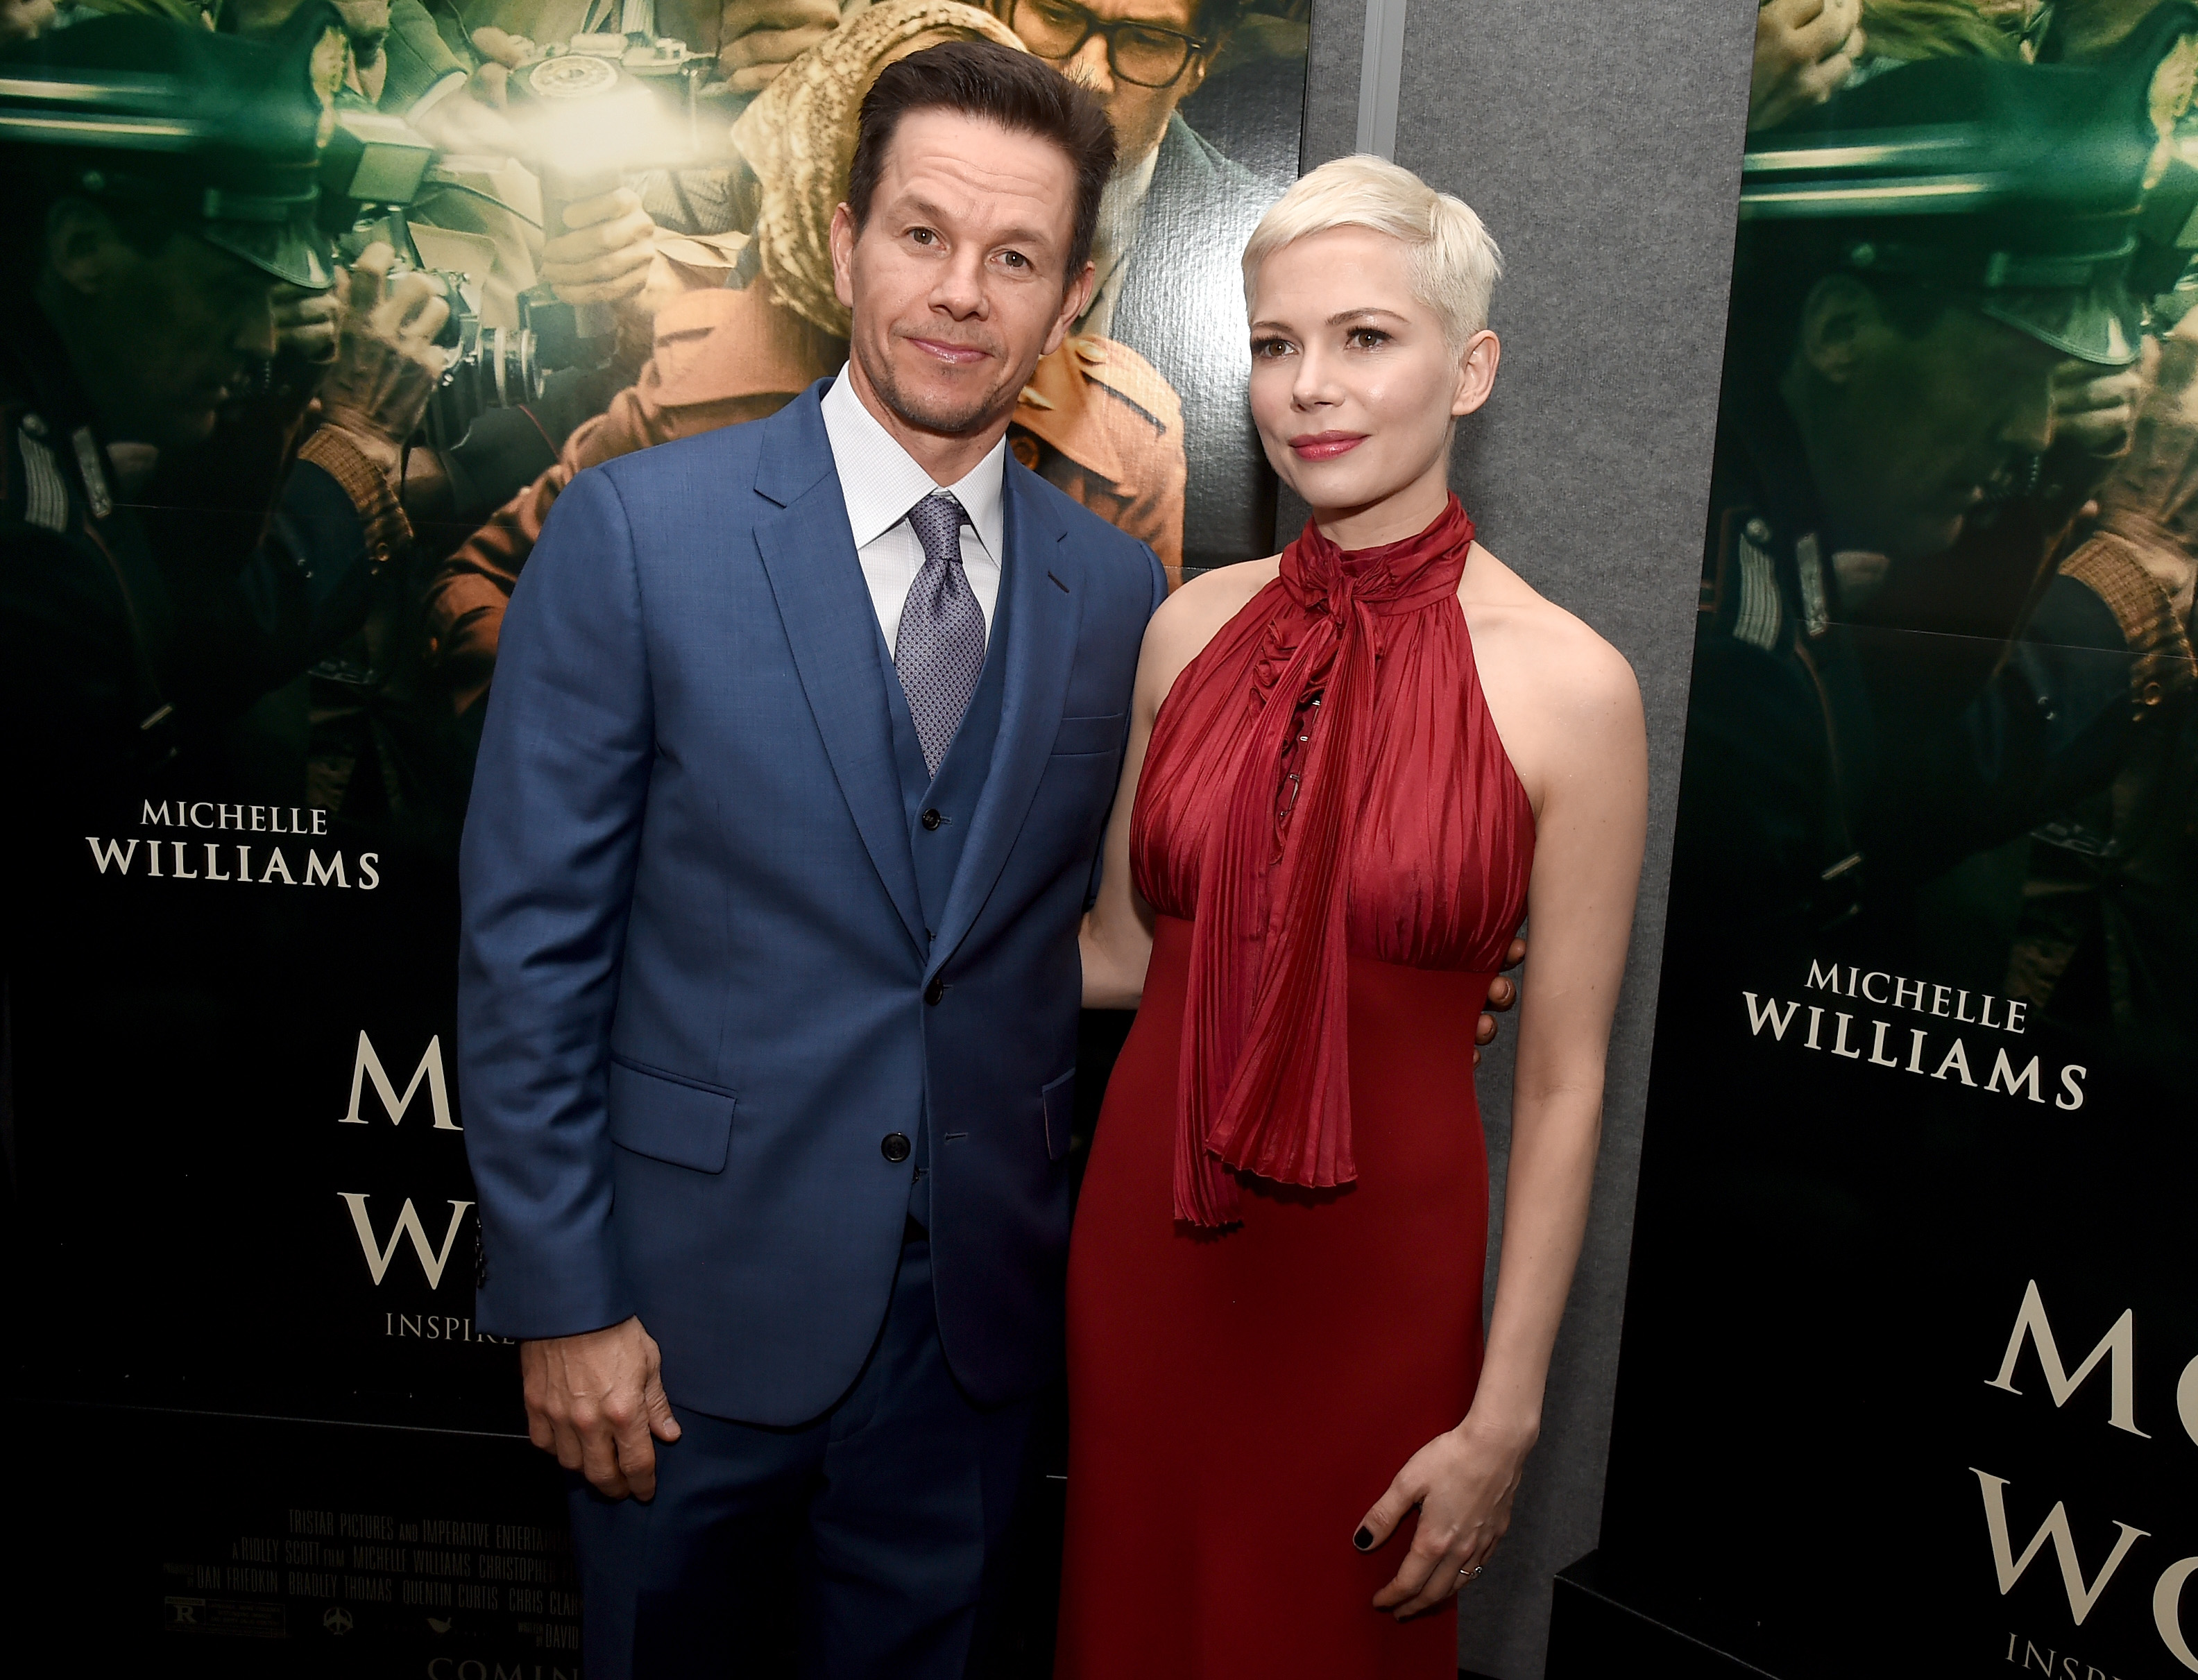 Mark Wahlberg dona 1 milione di dollari a Michelle Williams